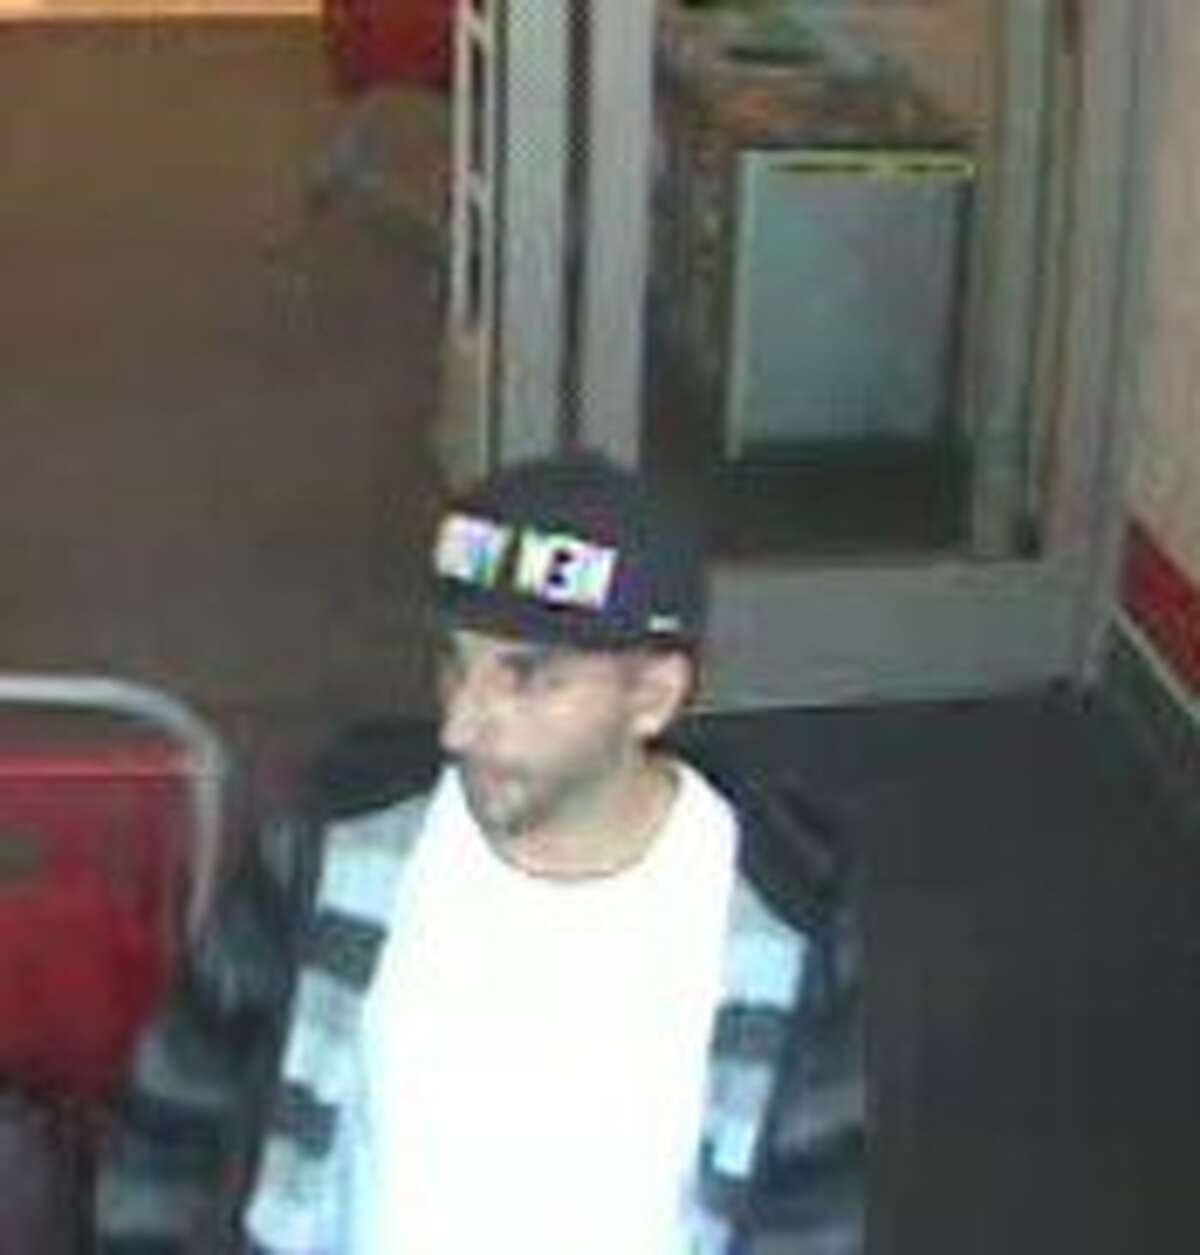 Suspect in Oxford credit card theft